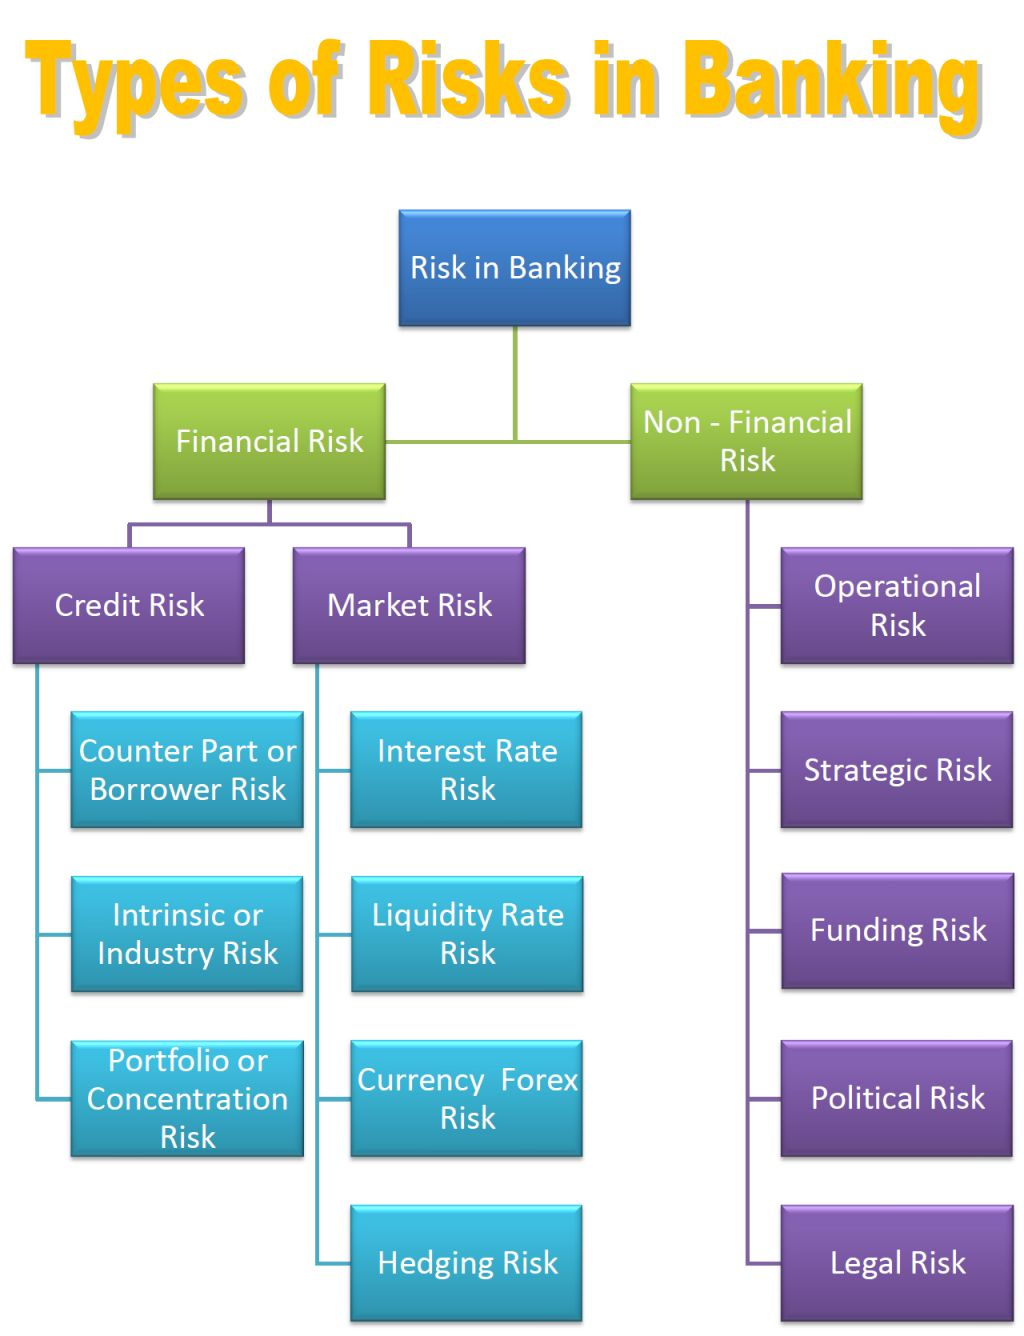 importance of operational risk in banks Since there is a close linkage of operational risk with other types of risks, it is very important for banks to first have a clear understanding of the concept of operational risk before designing the appropriate operational risk measurement and management framework.